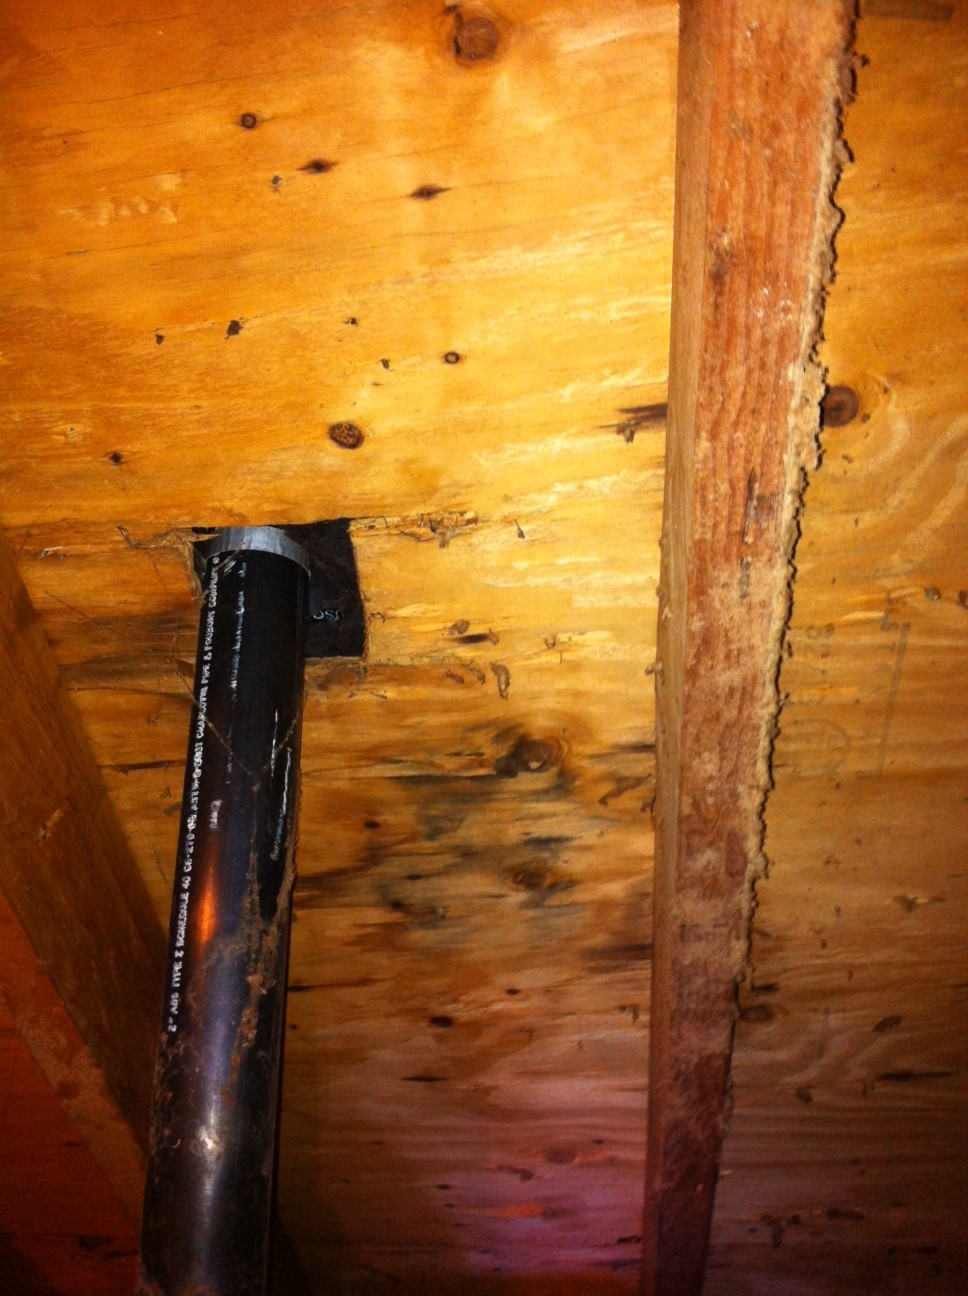 Water Leak From Roof water damage visible in attic, possible roof leak (roofing